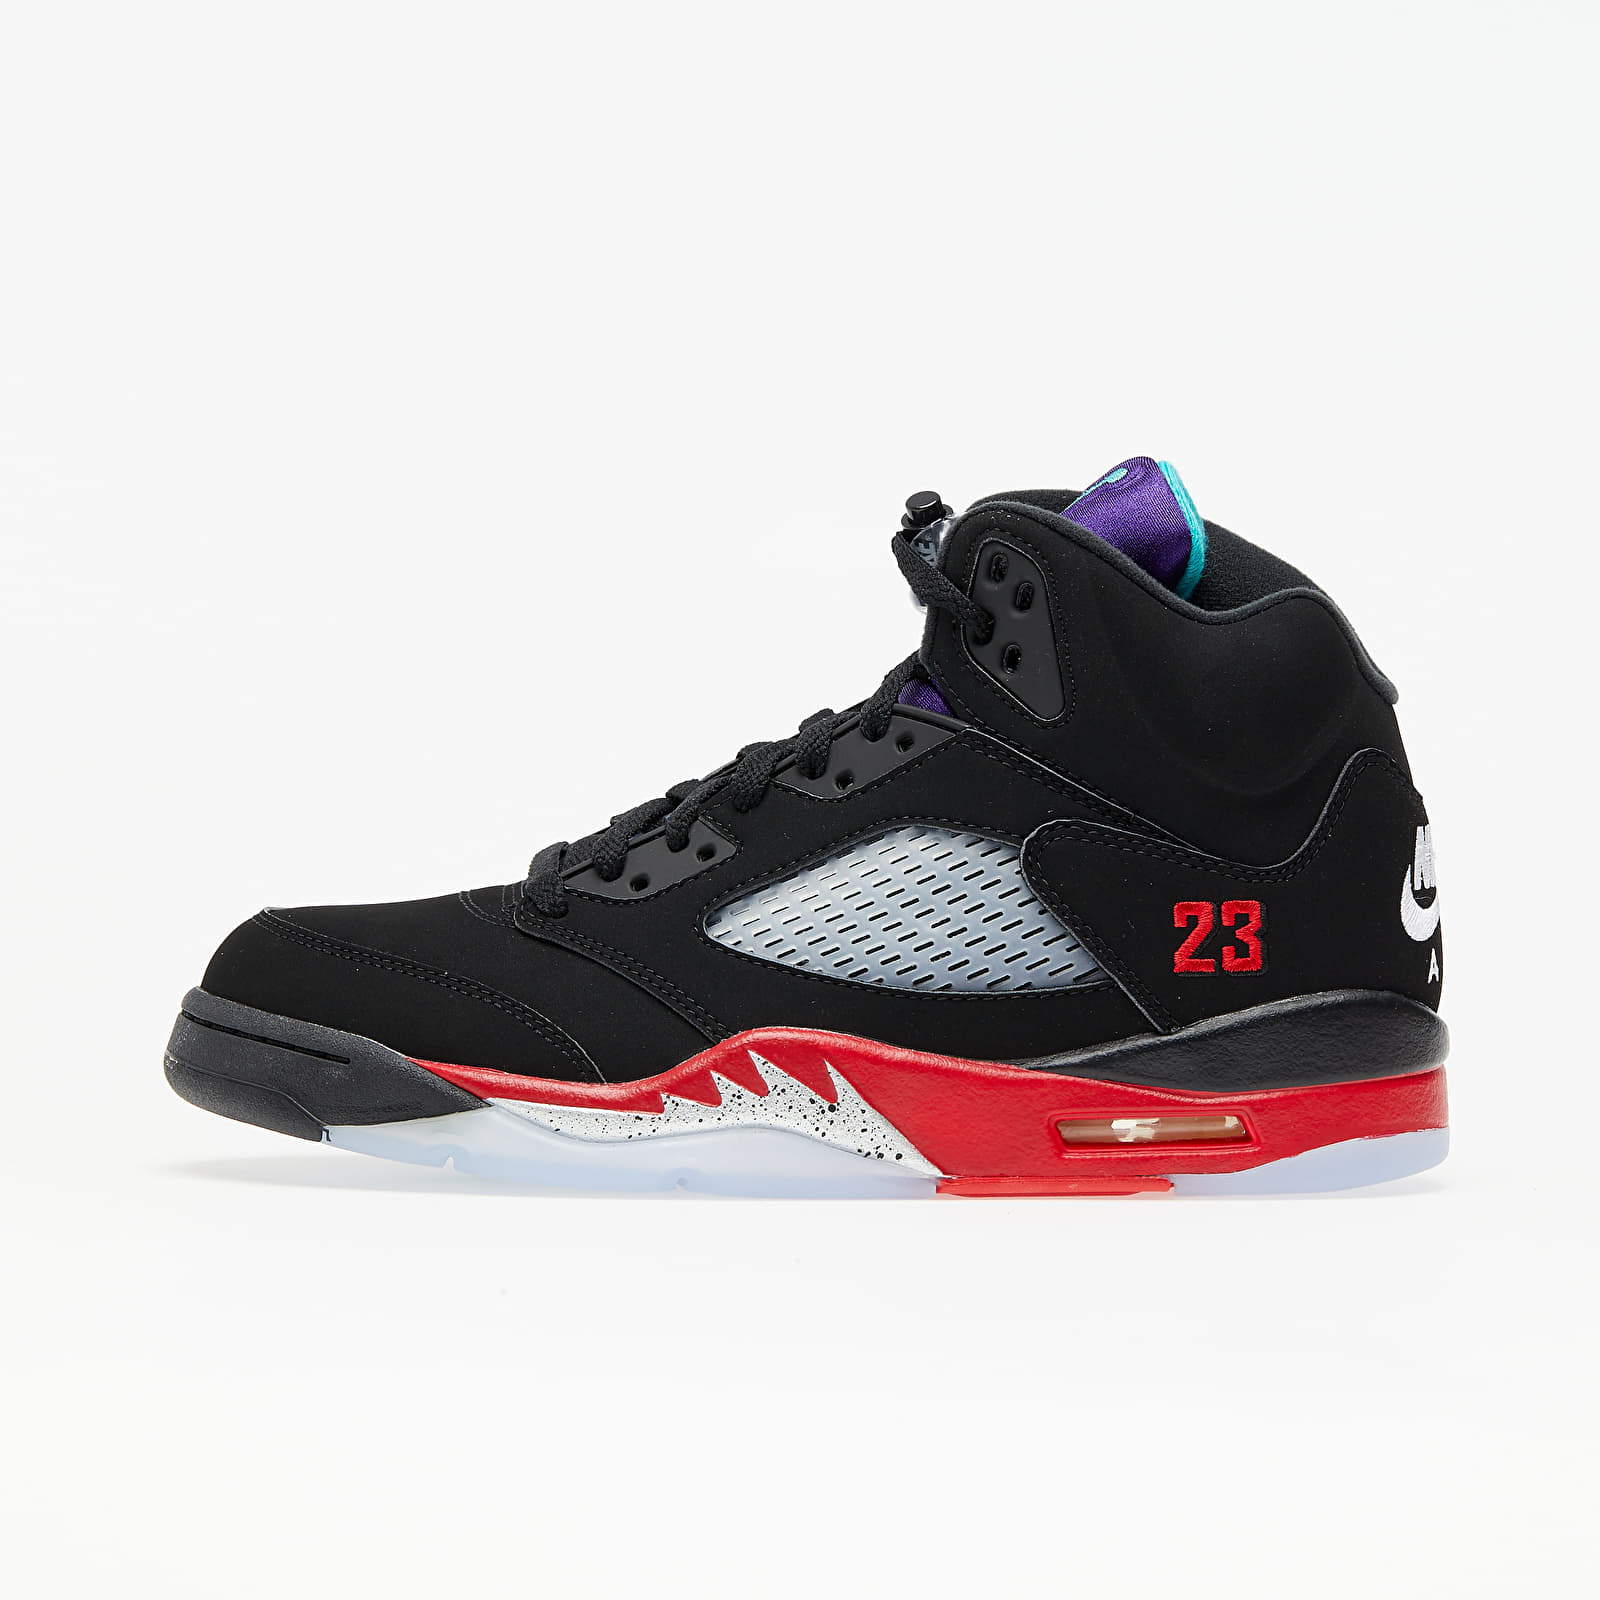 Air Jordan 5 Retro Black/ New Emerald-Fire Red-Grape Ice EUR 49.5